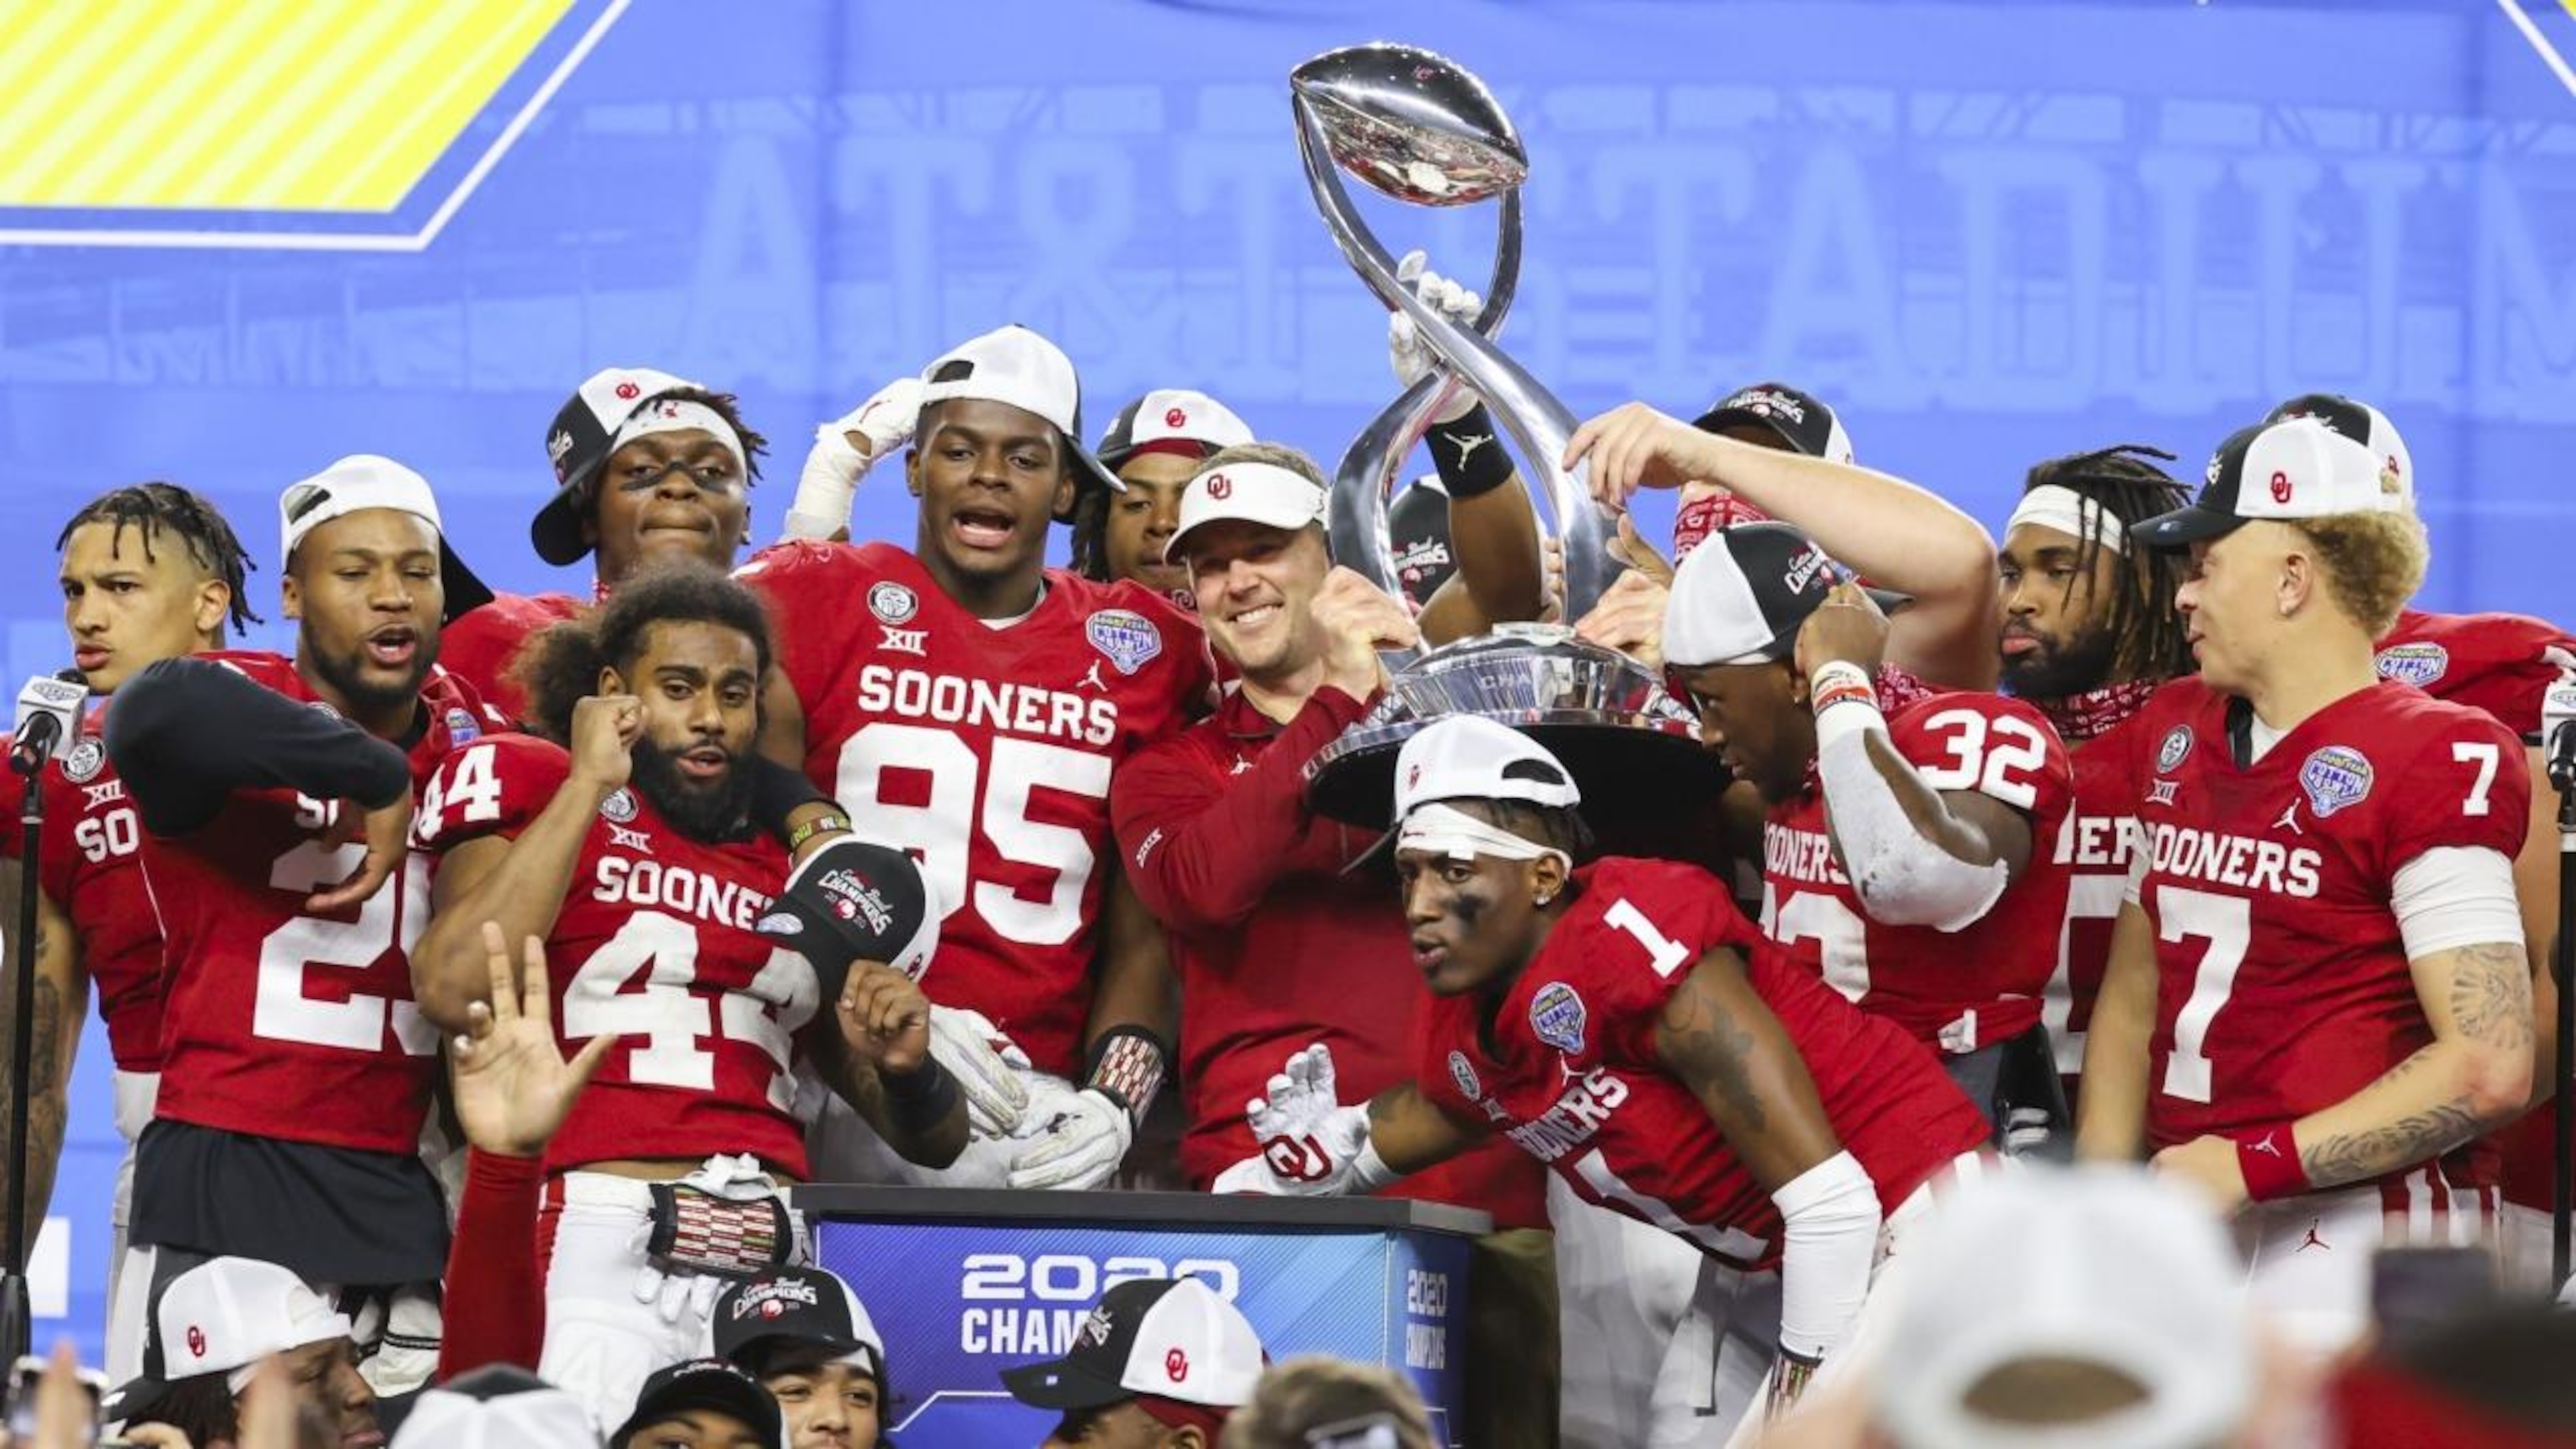 2020-21 College football bowl schedule, scores, TV listings, matchup information